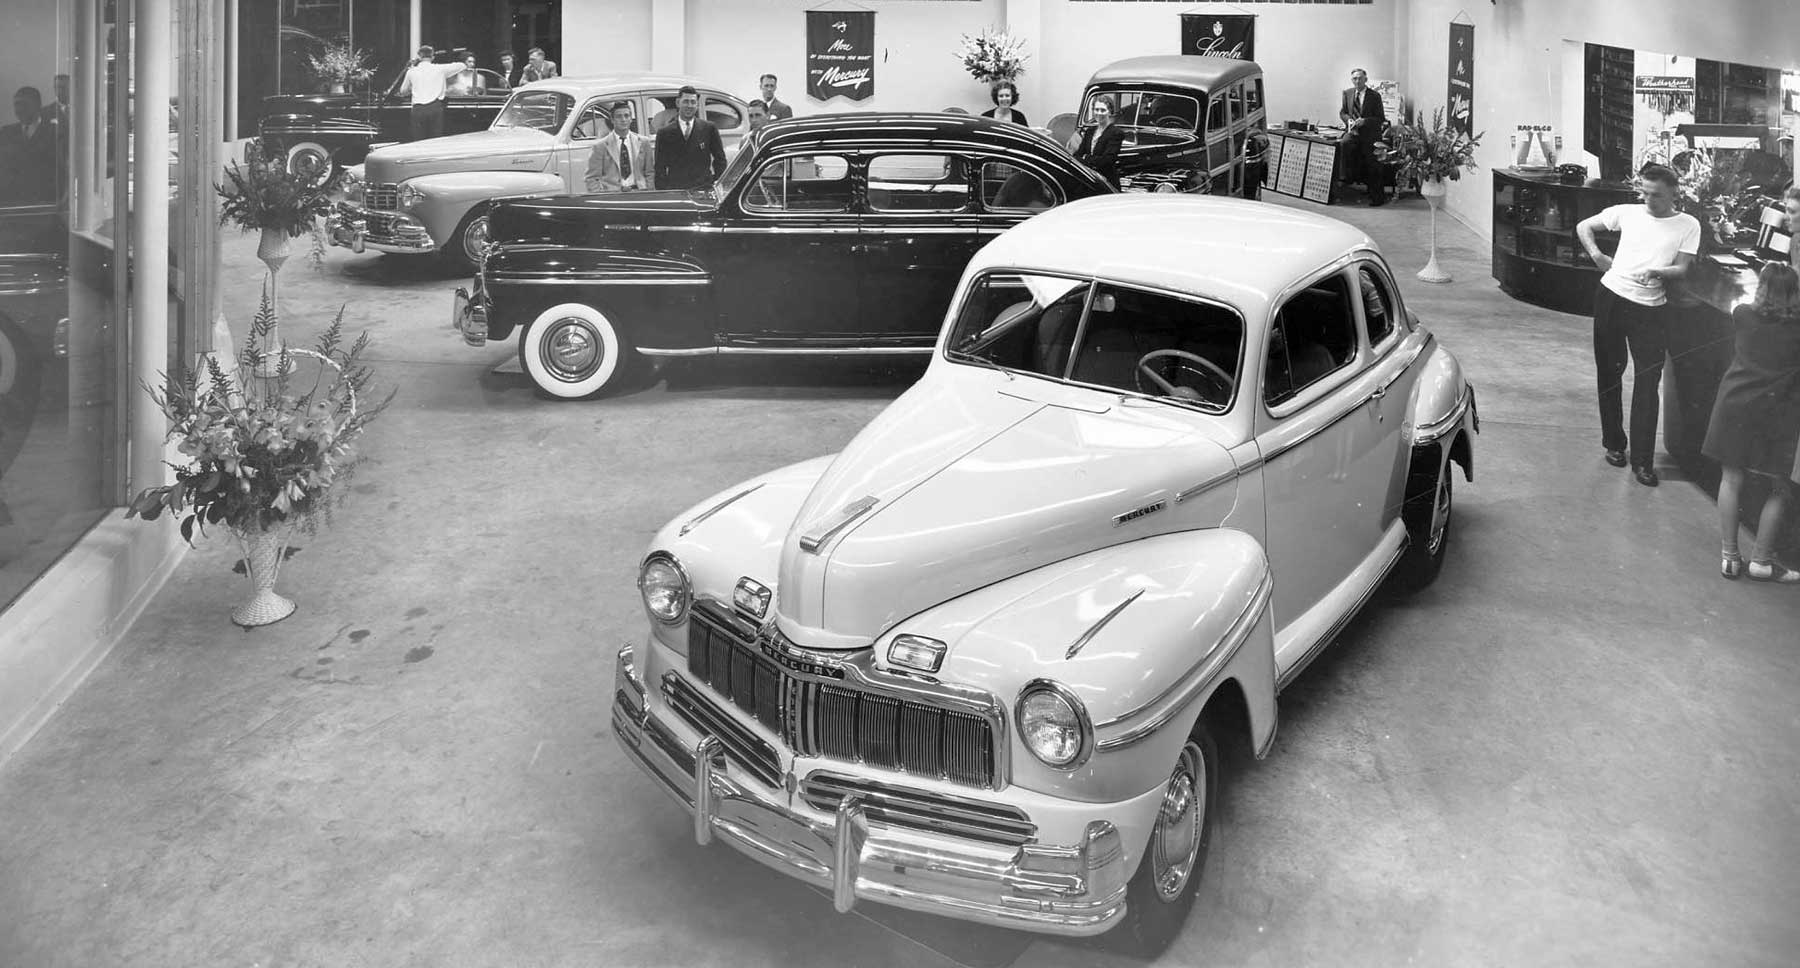 Puyallup Motor Company Rare 1947 Lincoln Mercury New Car Views 1941 Flathead Engine Share With Us What You Find Of Interest In These Photographs By The Richards Studio Courtesy Tacoma Public Library